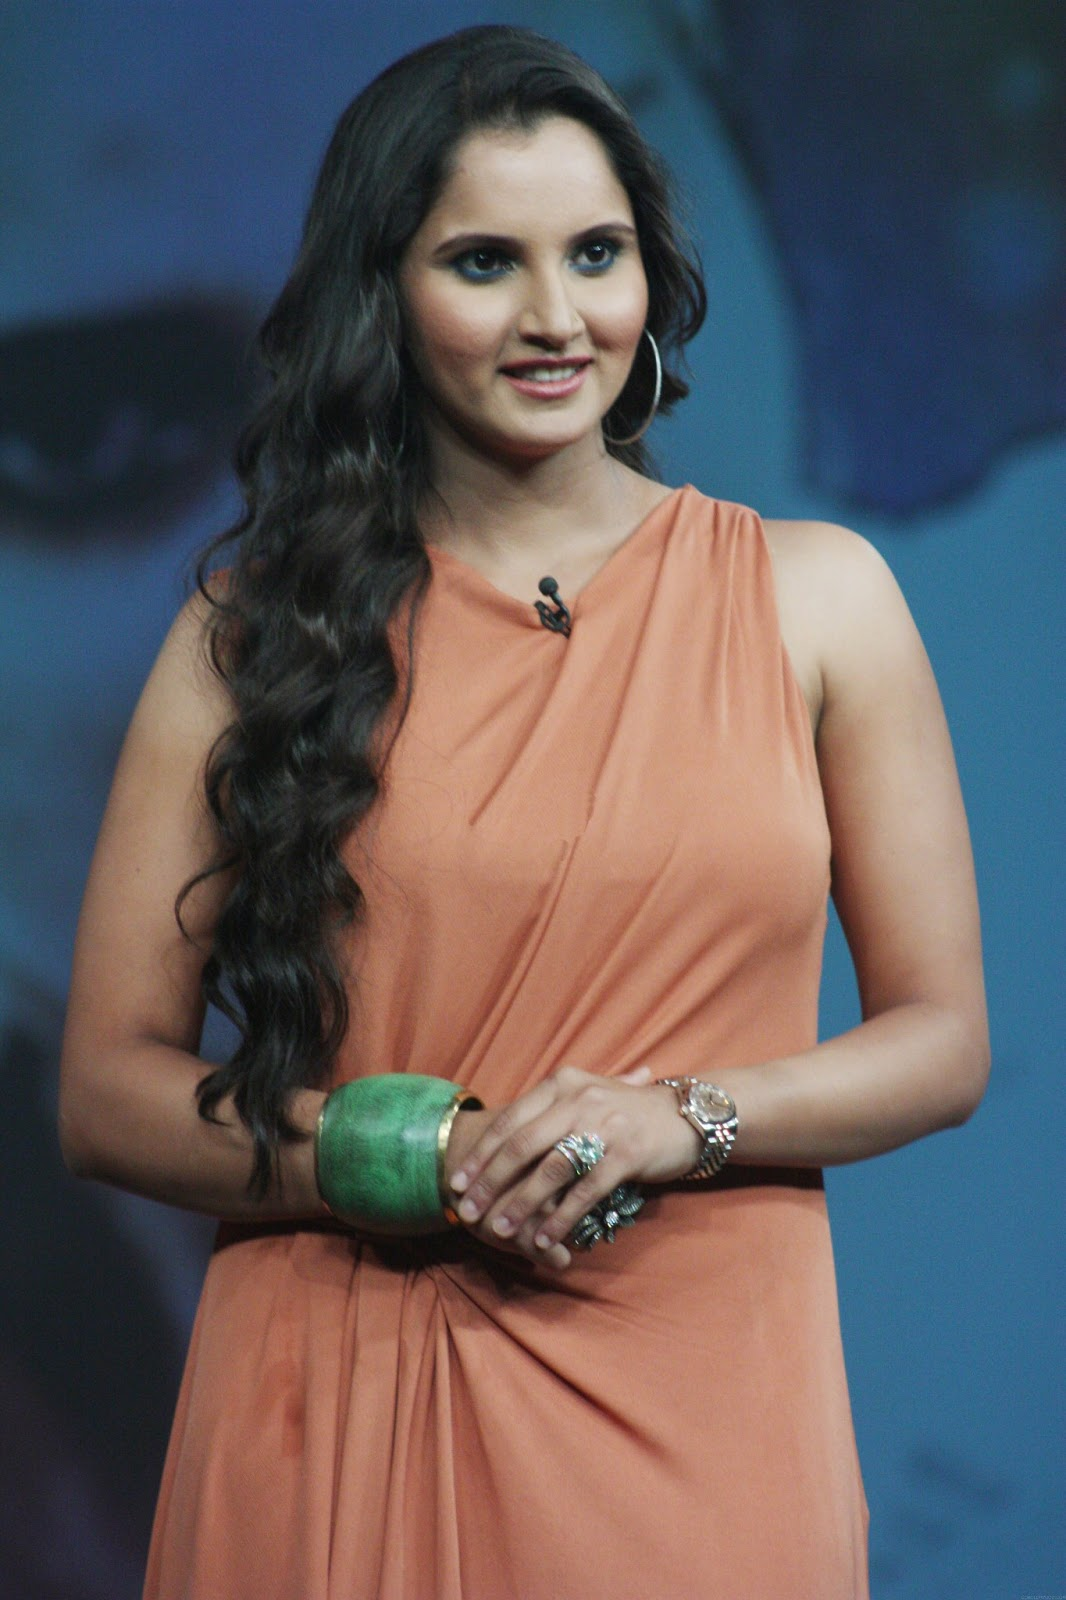 Sania Mirza sexy women